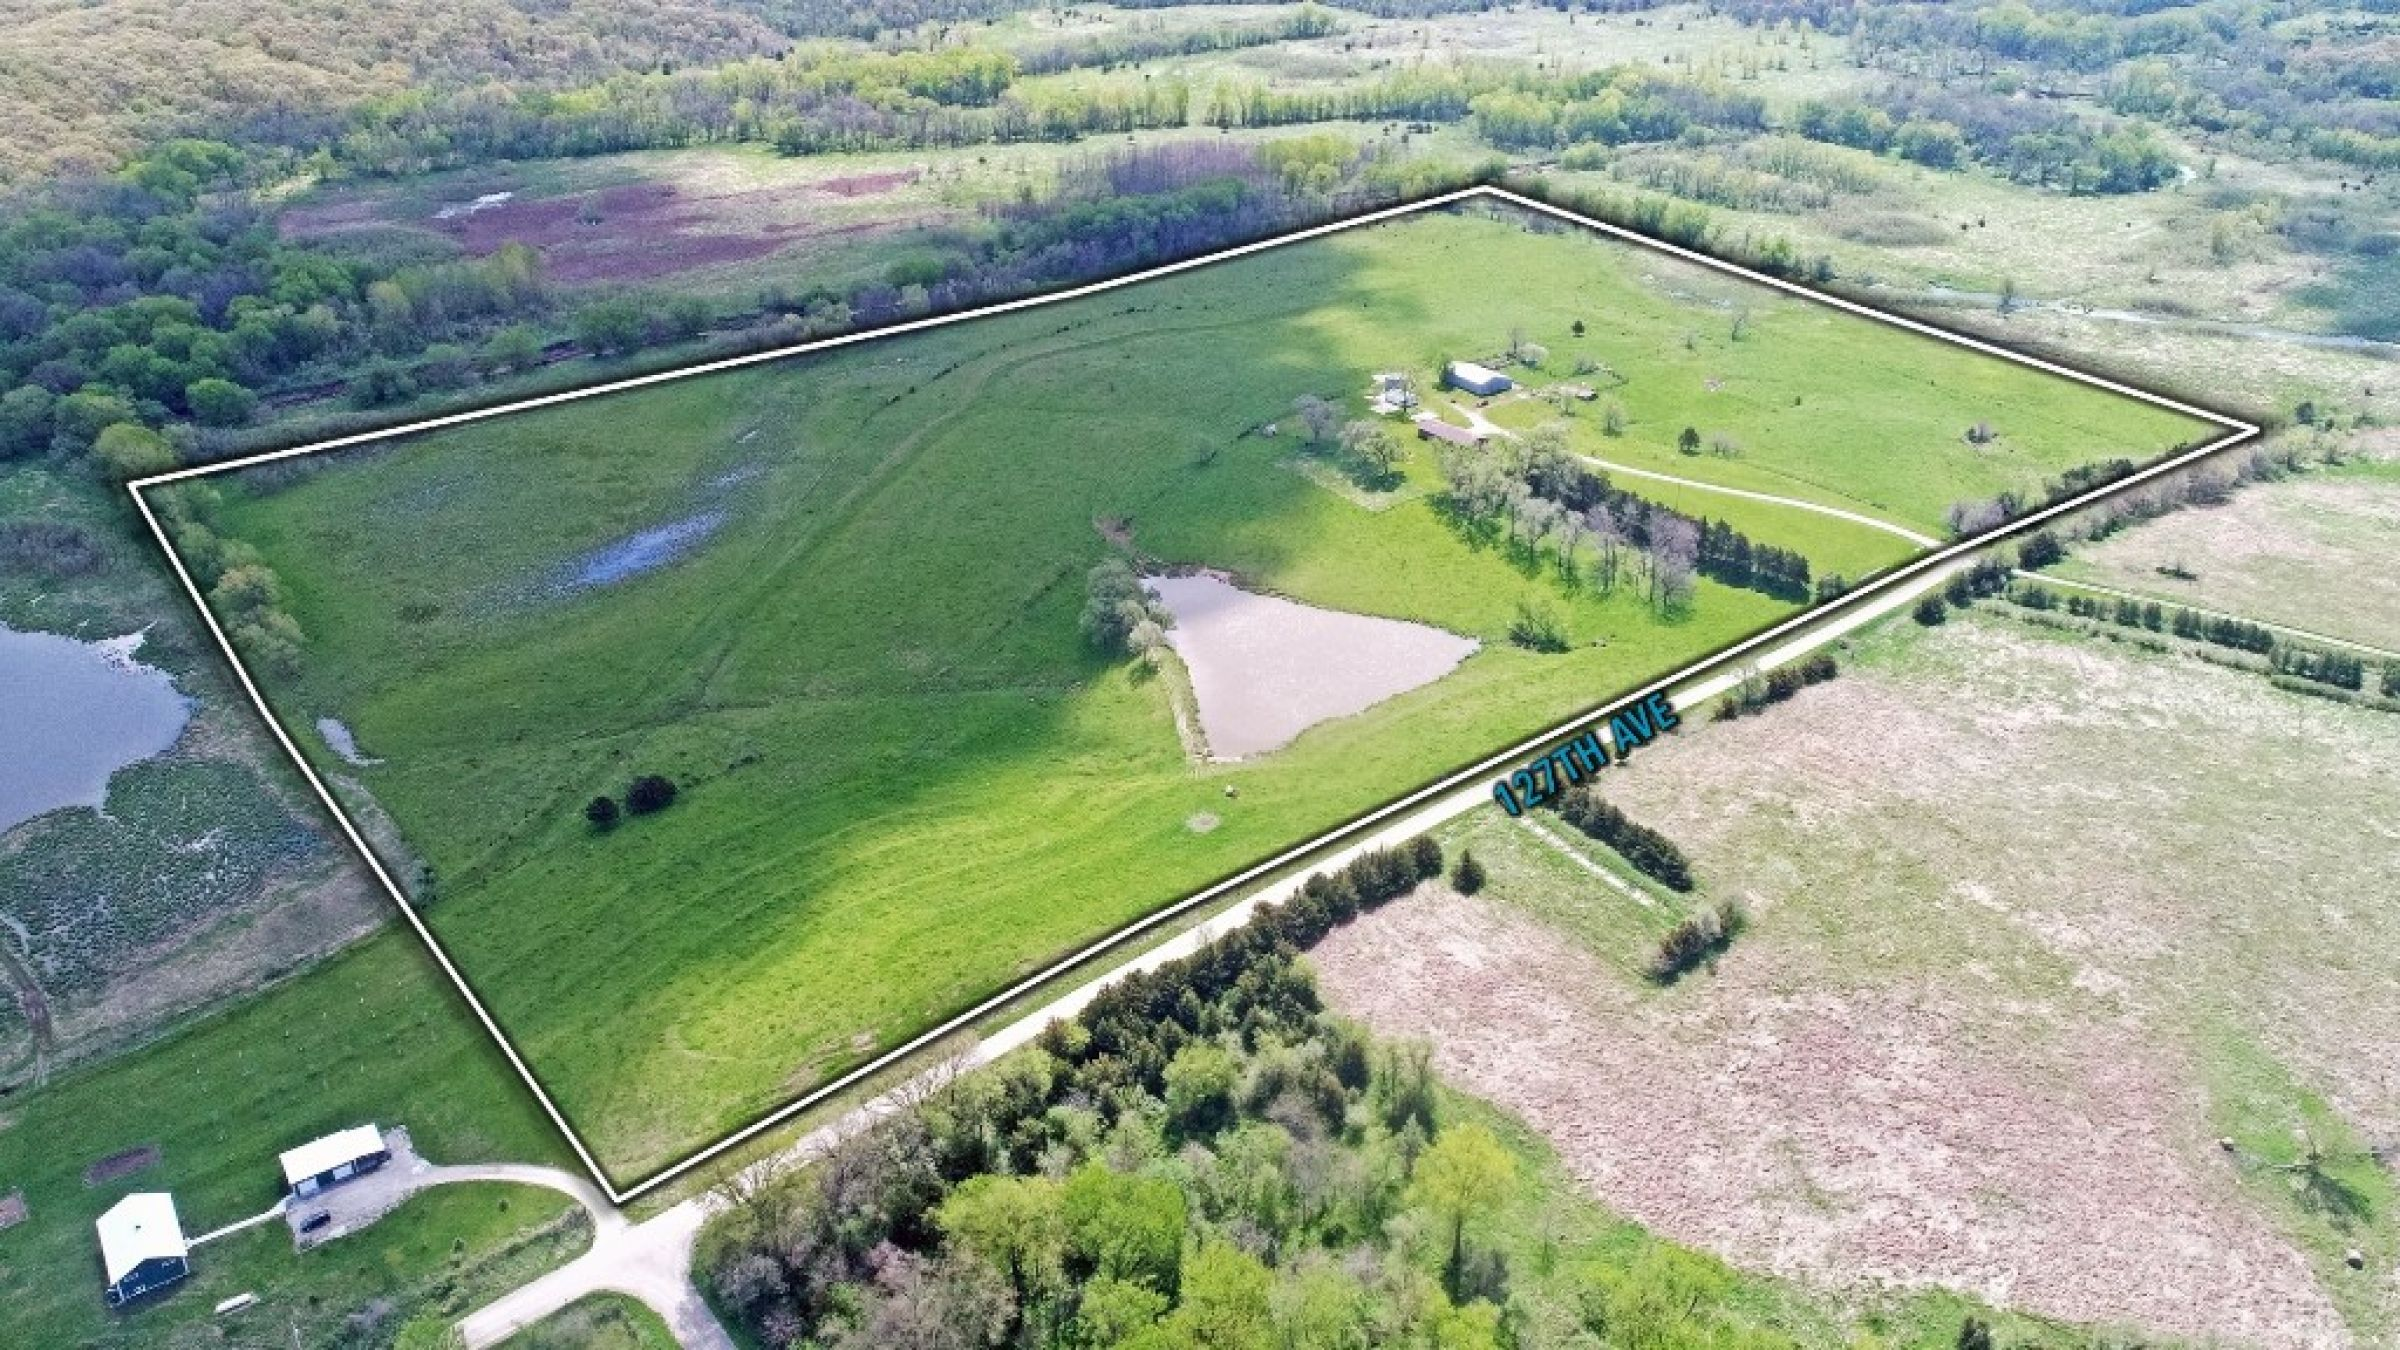 residential-lucas-county-iowa-60-acres-listing-number-14939-1-2020-05-07-165642.jpg